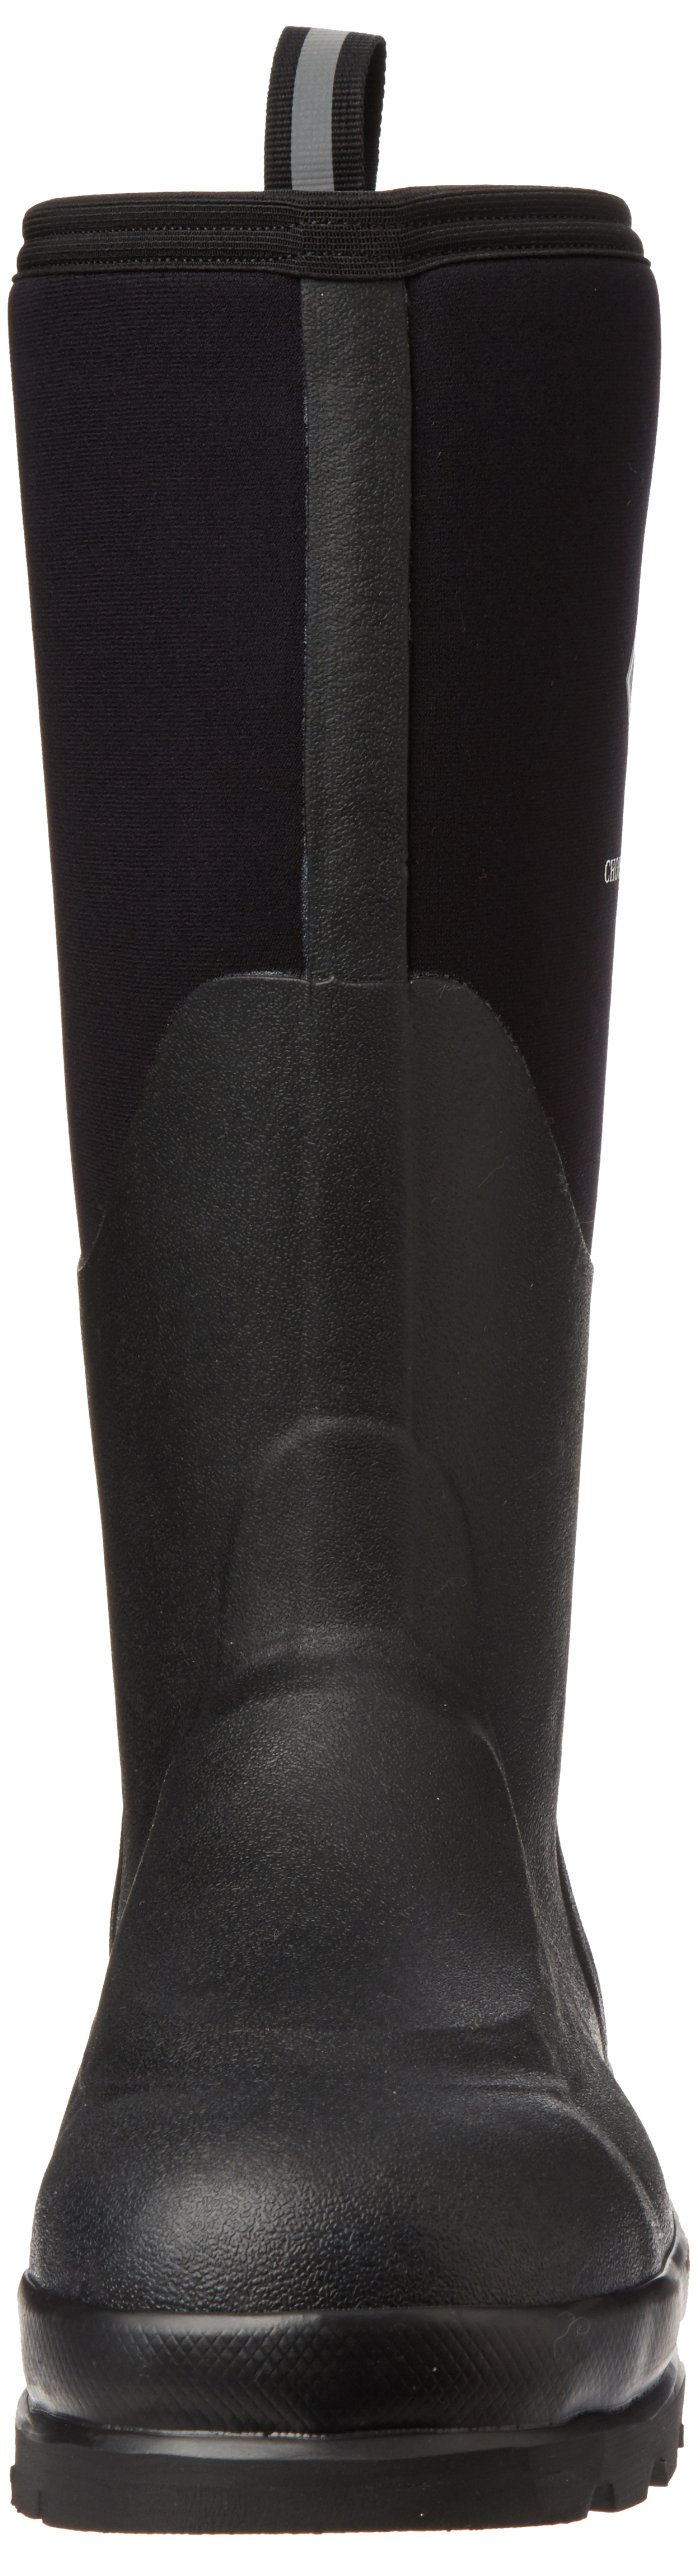 MuckBoots Men's Chore Safety Toe Metatarsal Work Boot,Black,10 M US by Muck Boot (Image #4)